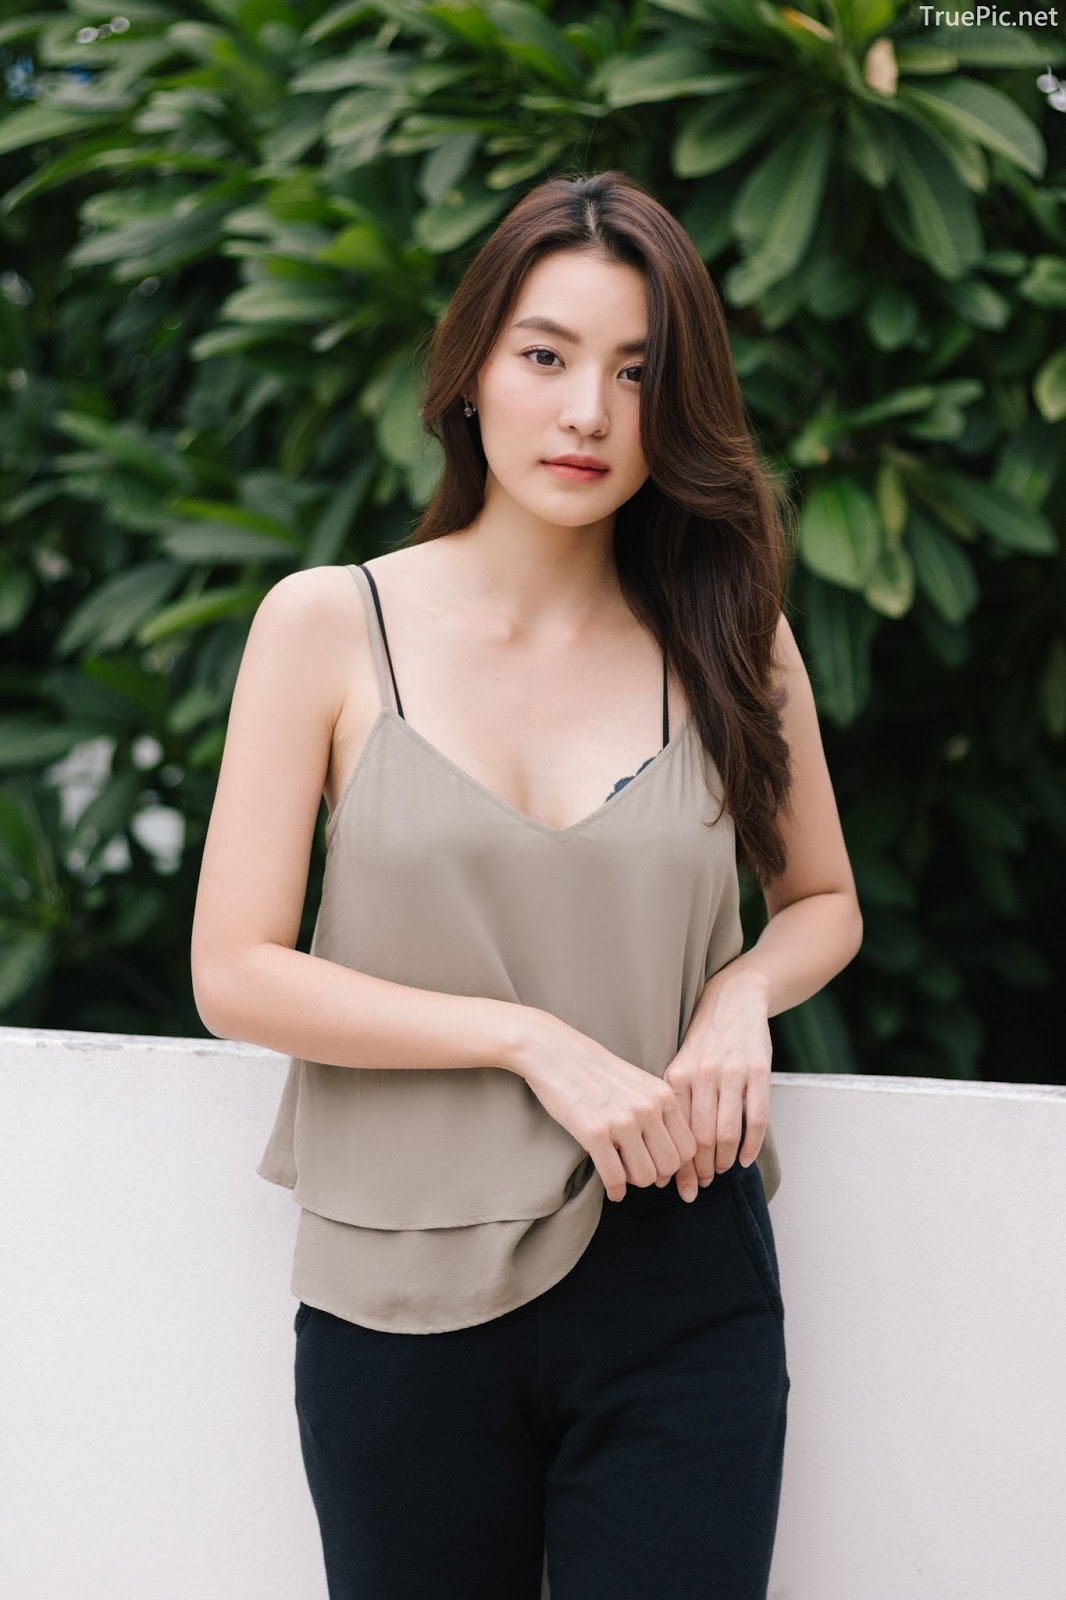 Beauty Thailand Kapook Phatchara so attractive with photo album Bloom with grace - Picture 7